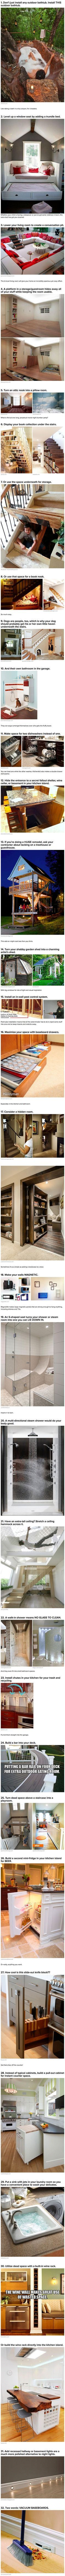 Here are some cool and geeky ways to pimp your home.